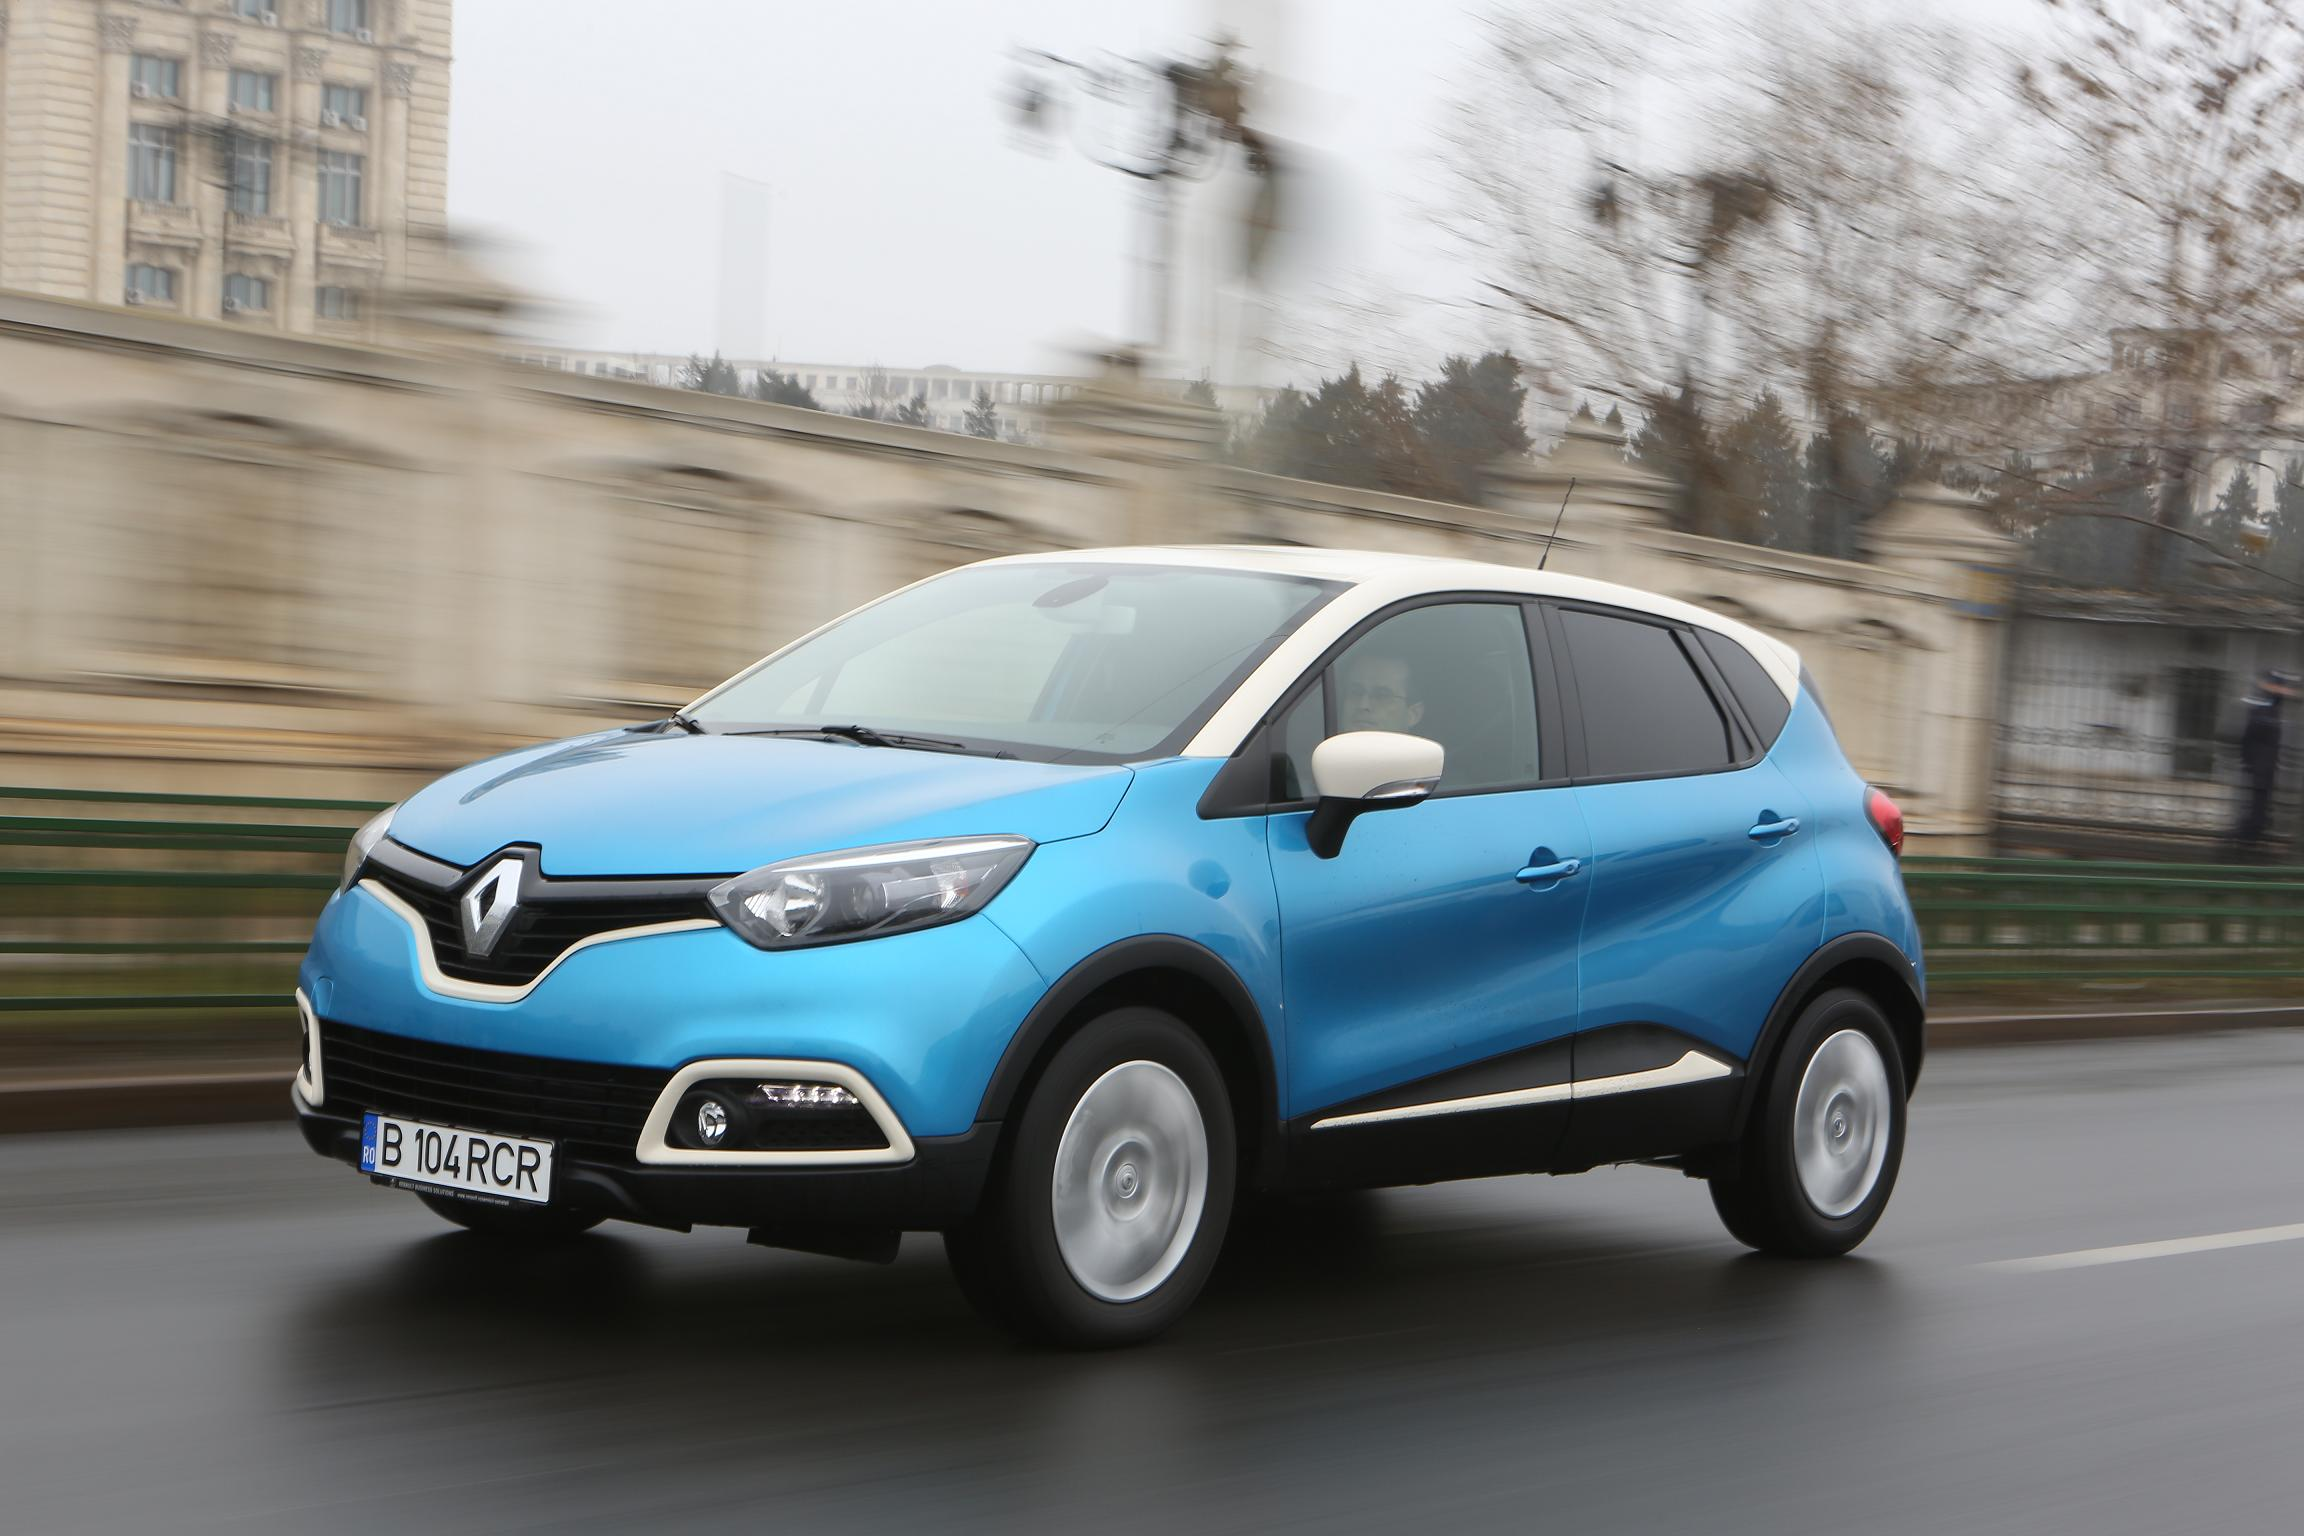 renault captur un alt fel de test drive headline test drive teste auto bild. Black Bedroom Furniture Sets. Home Design Ideas